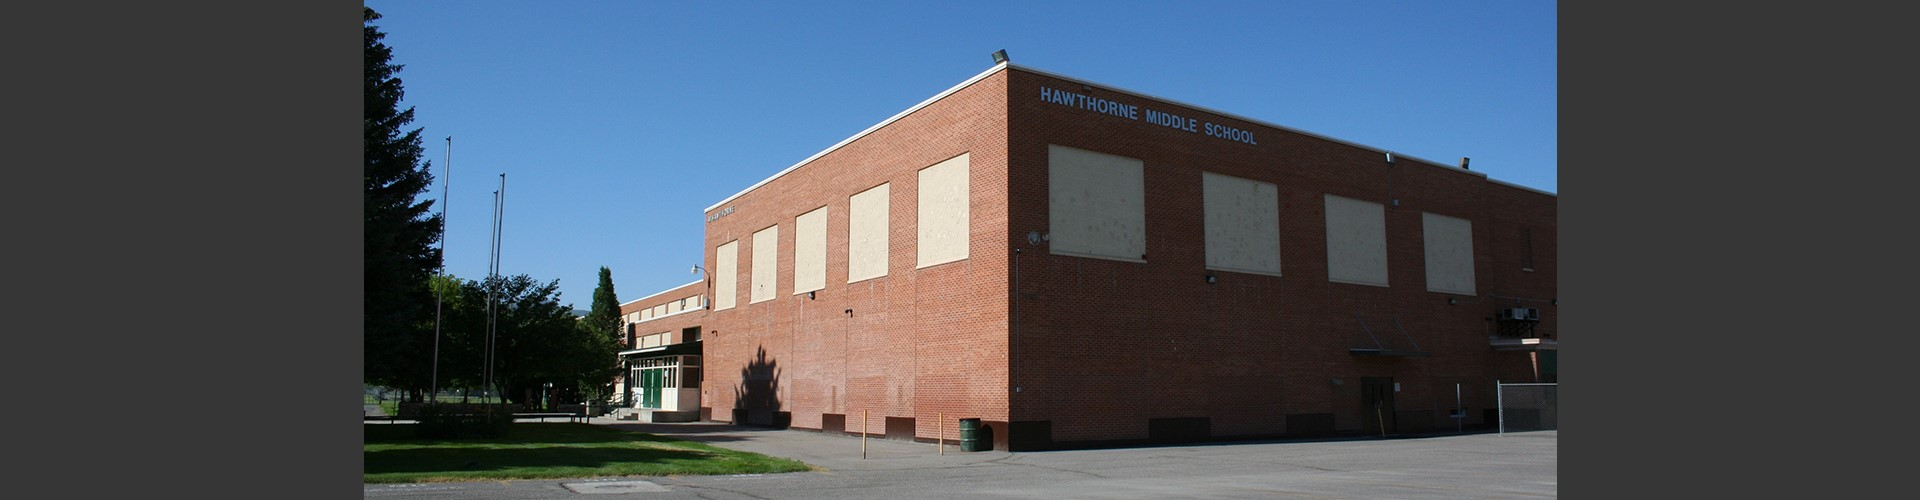 Hawthorne Middle School building